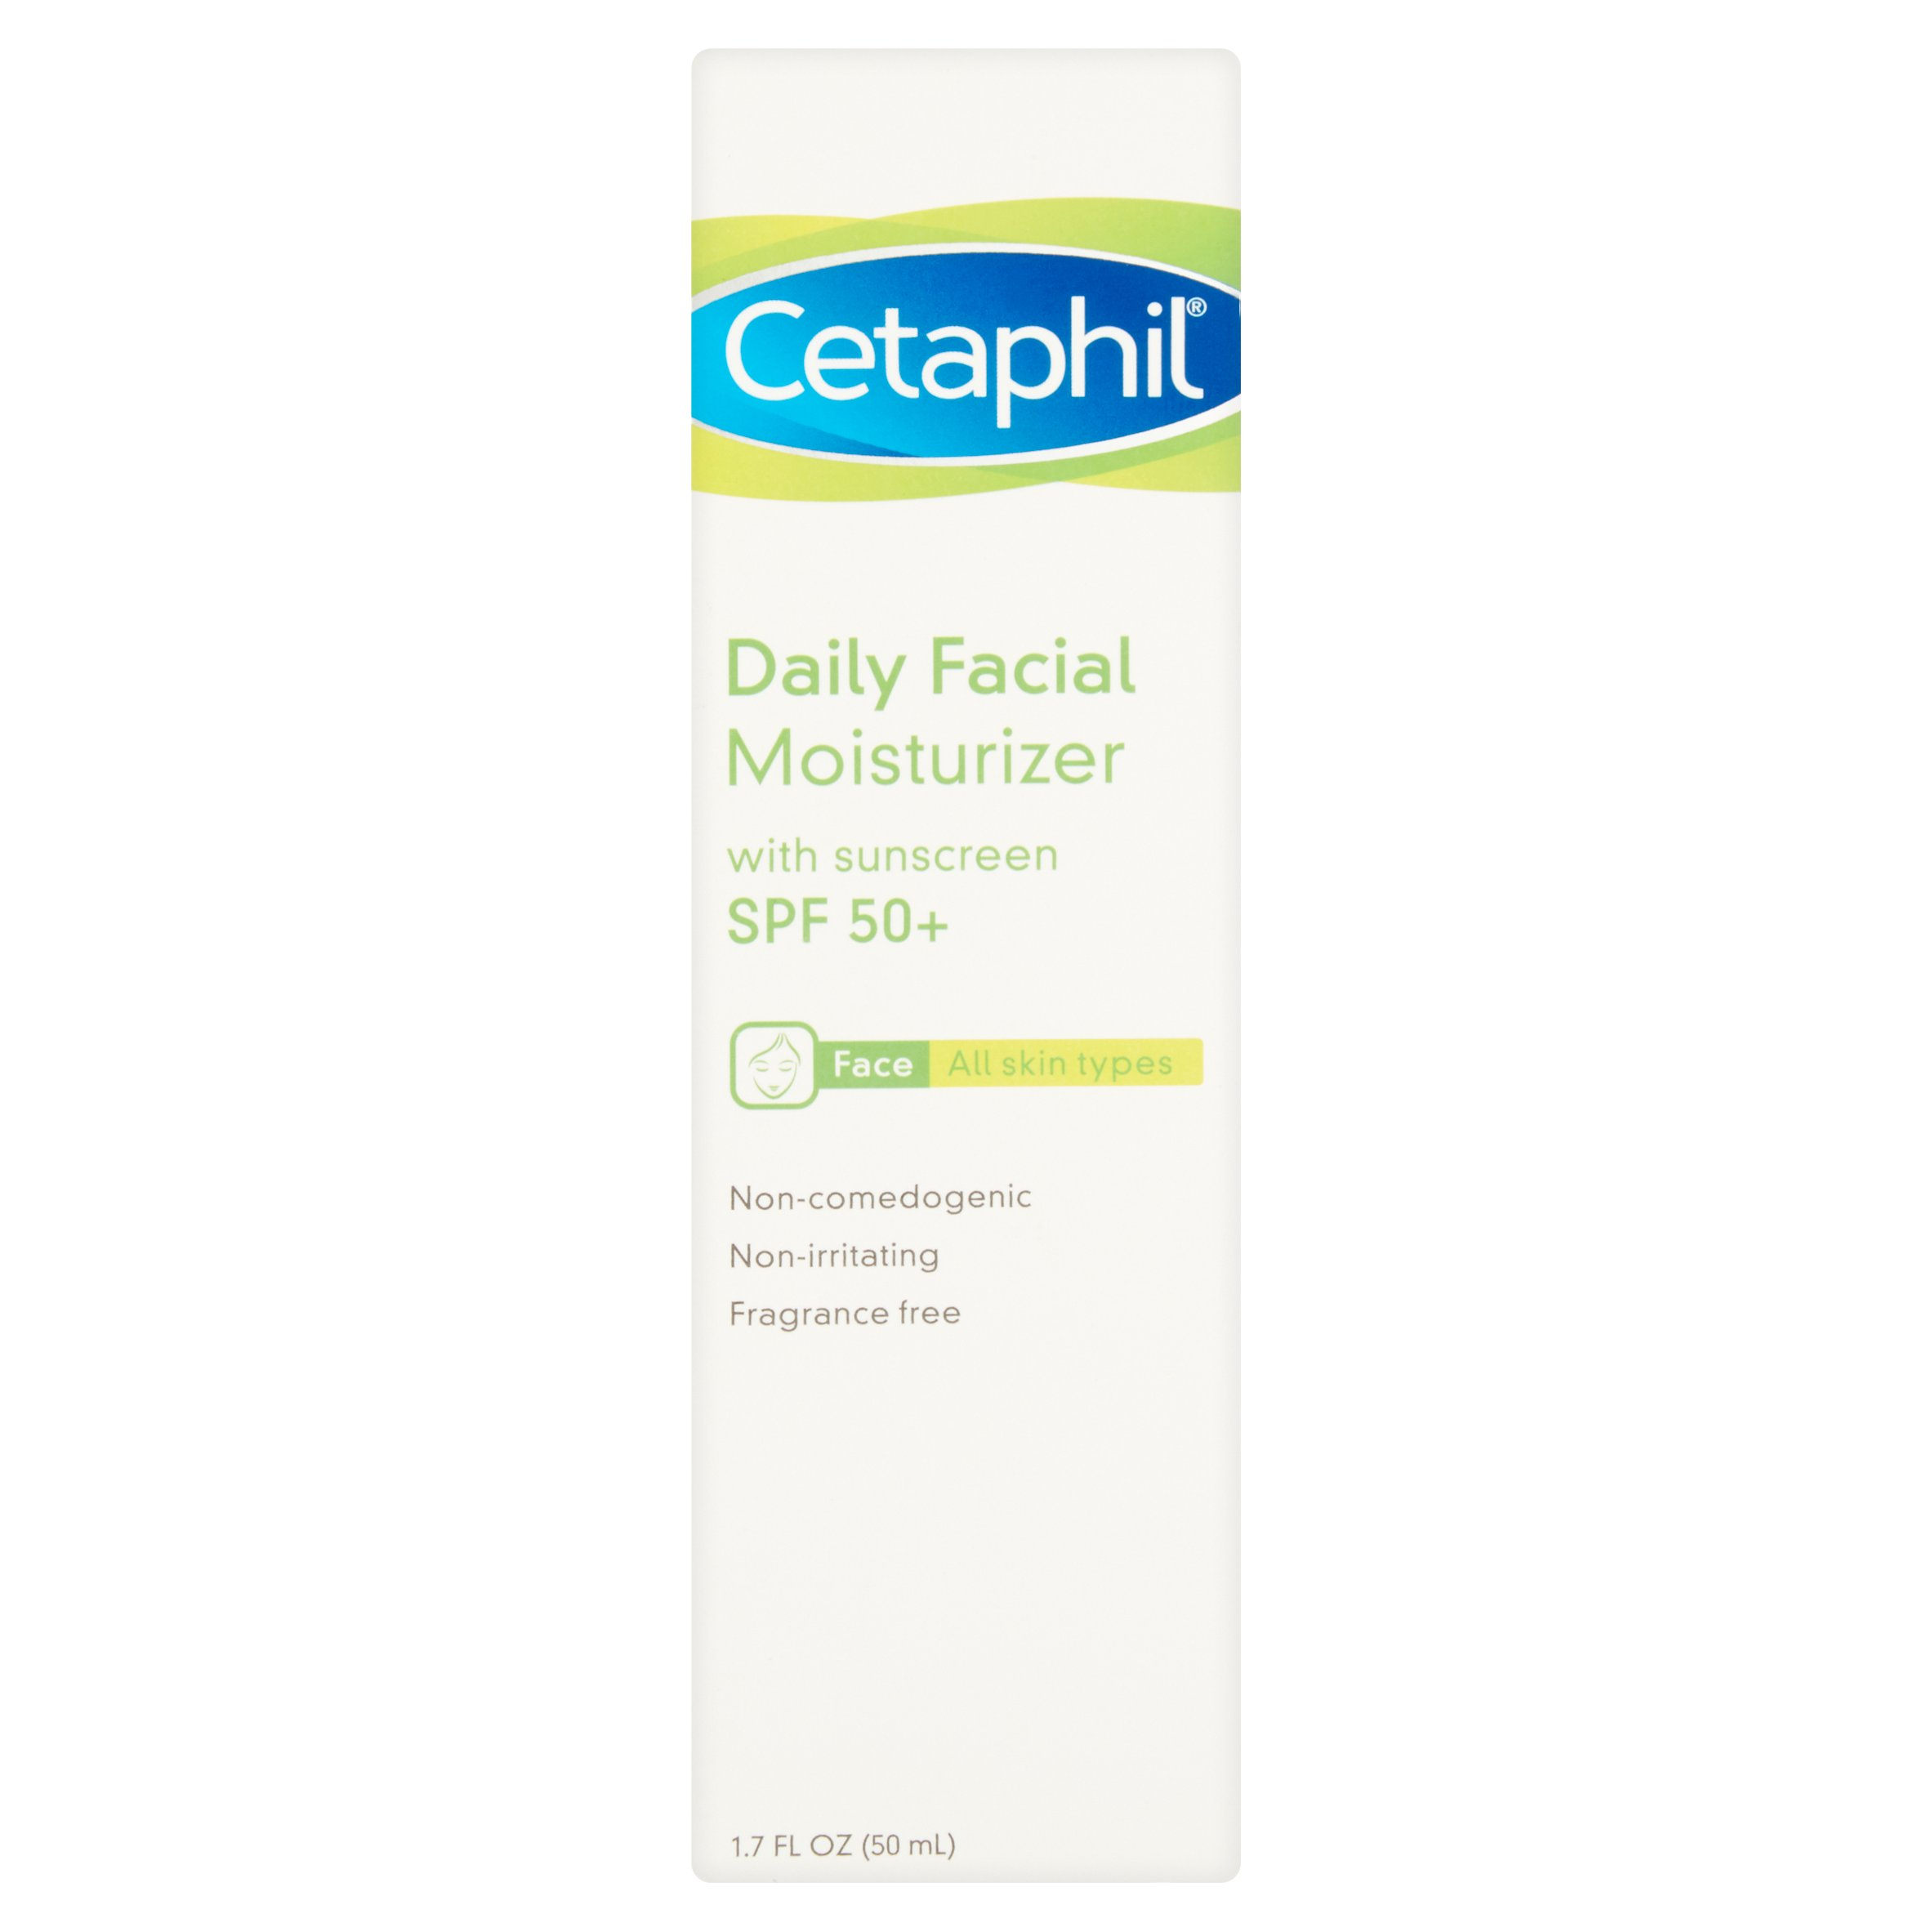 Cetaphil Daily Facial Moisturizer Spf 50 2017 Formulation Special Package Mom And Baby